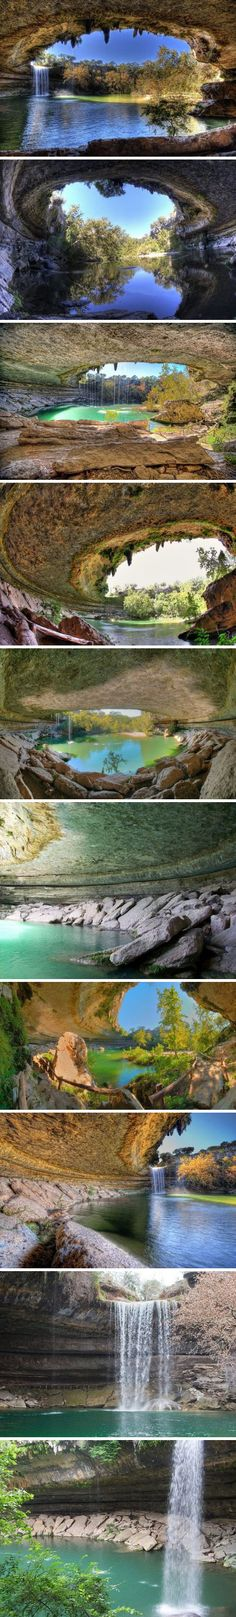 Hamilton Pool – a natural water basin formed about a thousand years ago as a result of the collapse of the tunnel arch, which flowed underground river.   located about 37 km from the U.S. city of Austin